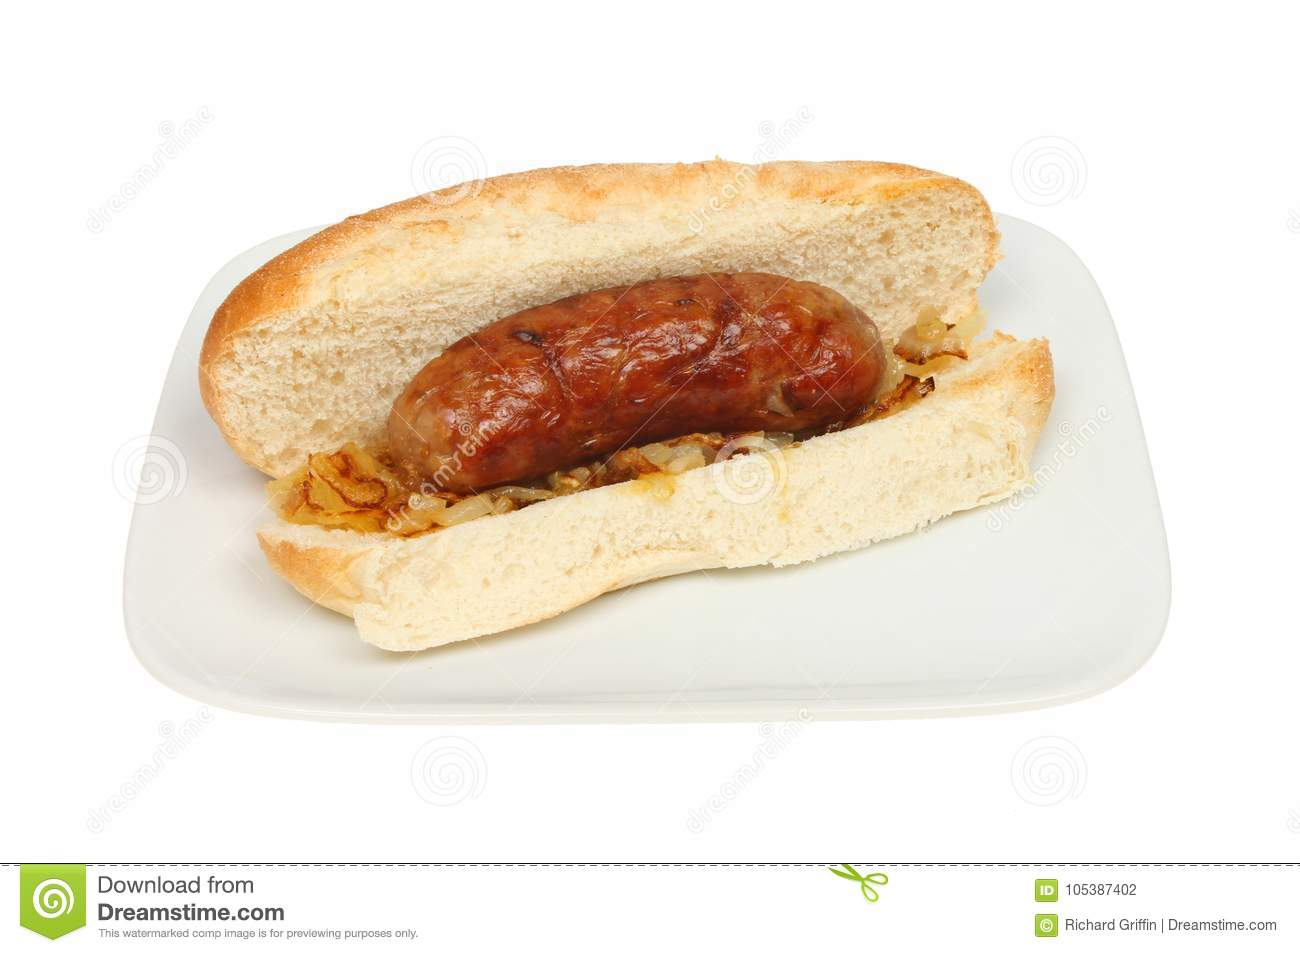 Sausage in a sub roll